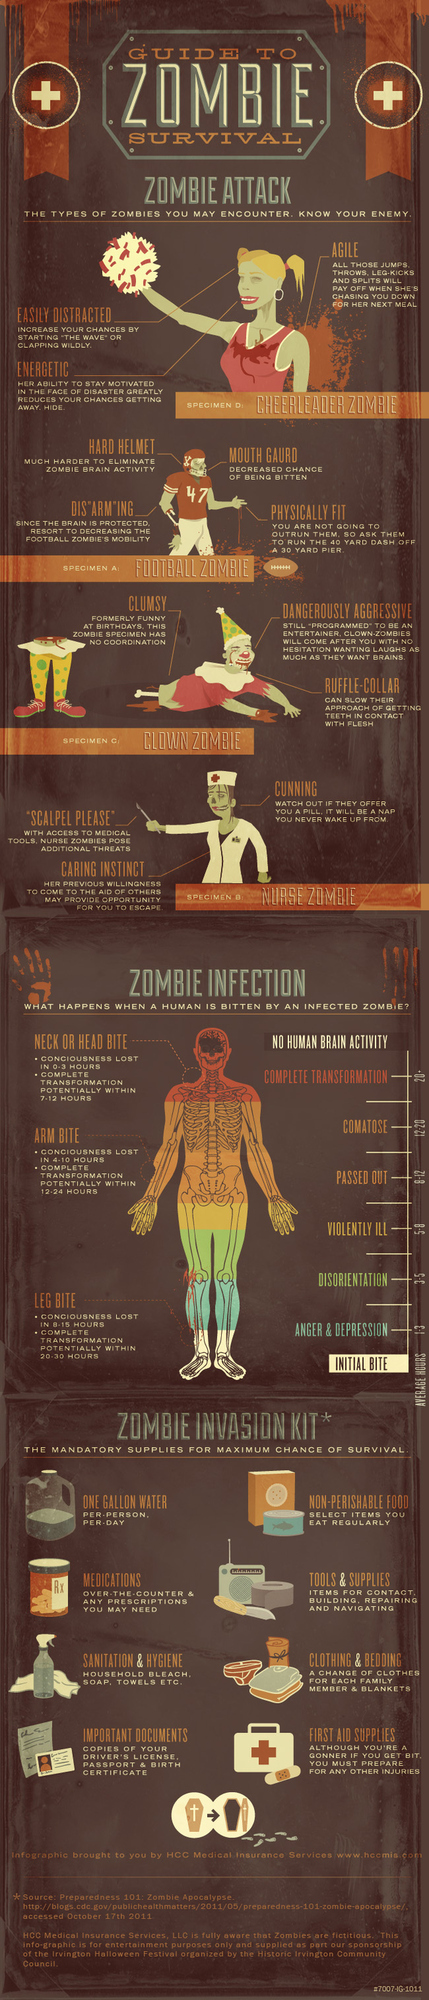 Zombie Survival Guide [Infographic]